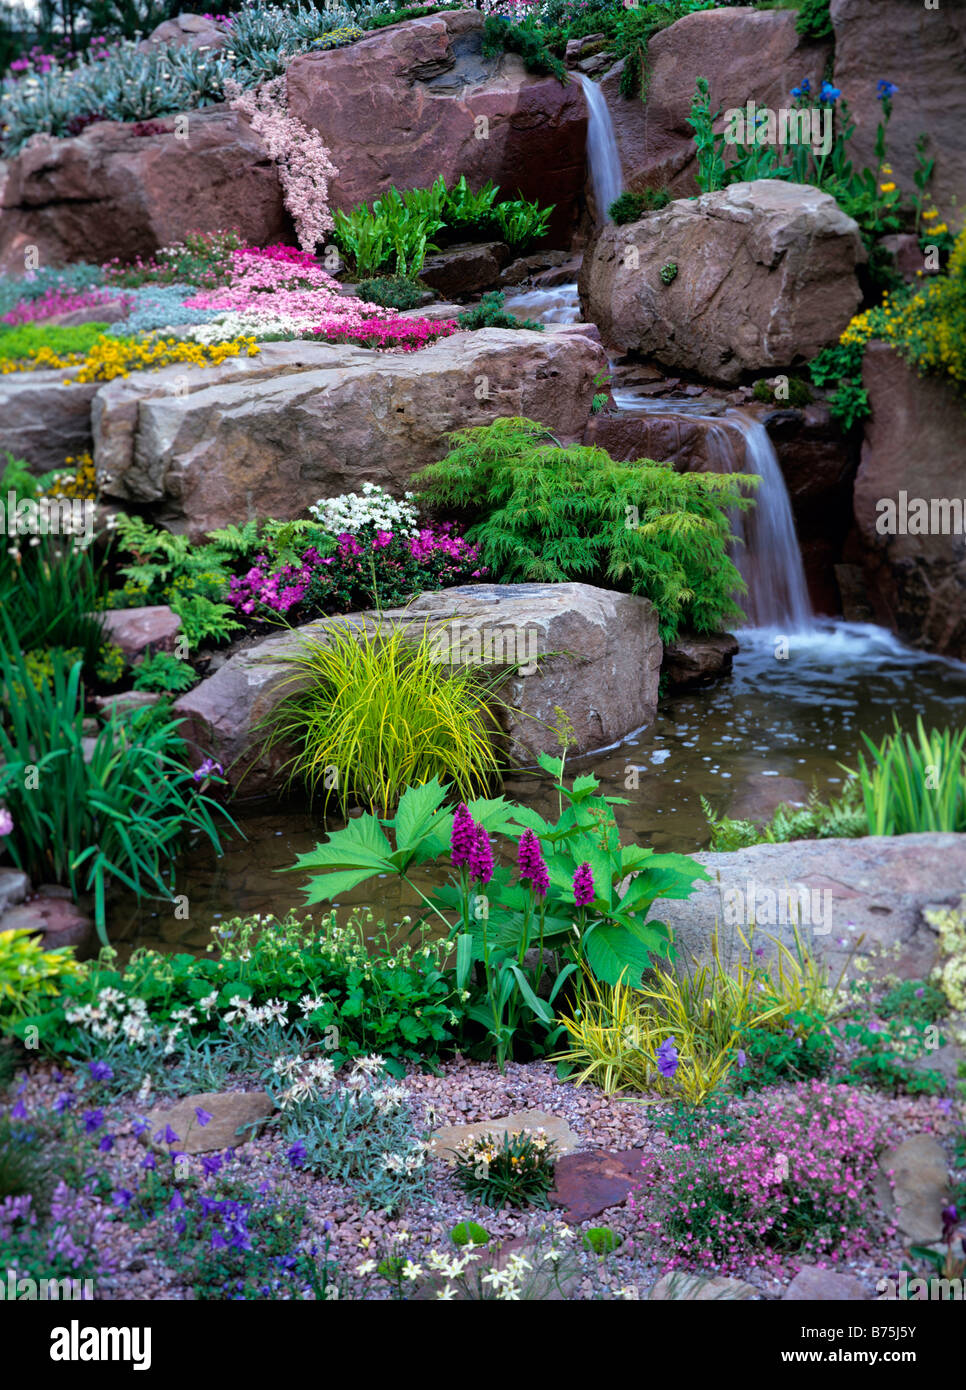 Colourful alpine planted rockery and waterfall - Stock Image